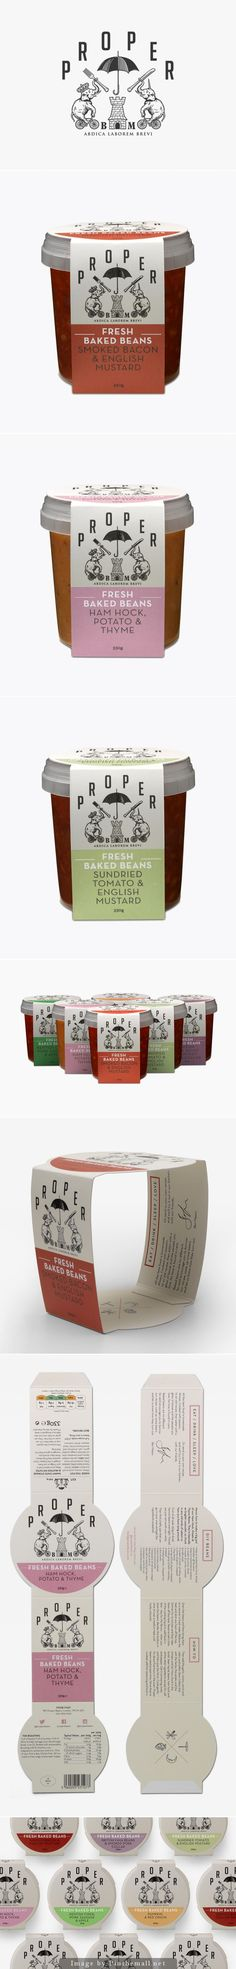 Proper Beans designed by Interabang, as seen on bpando.org. Pin curated by SFieds99. #packaging